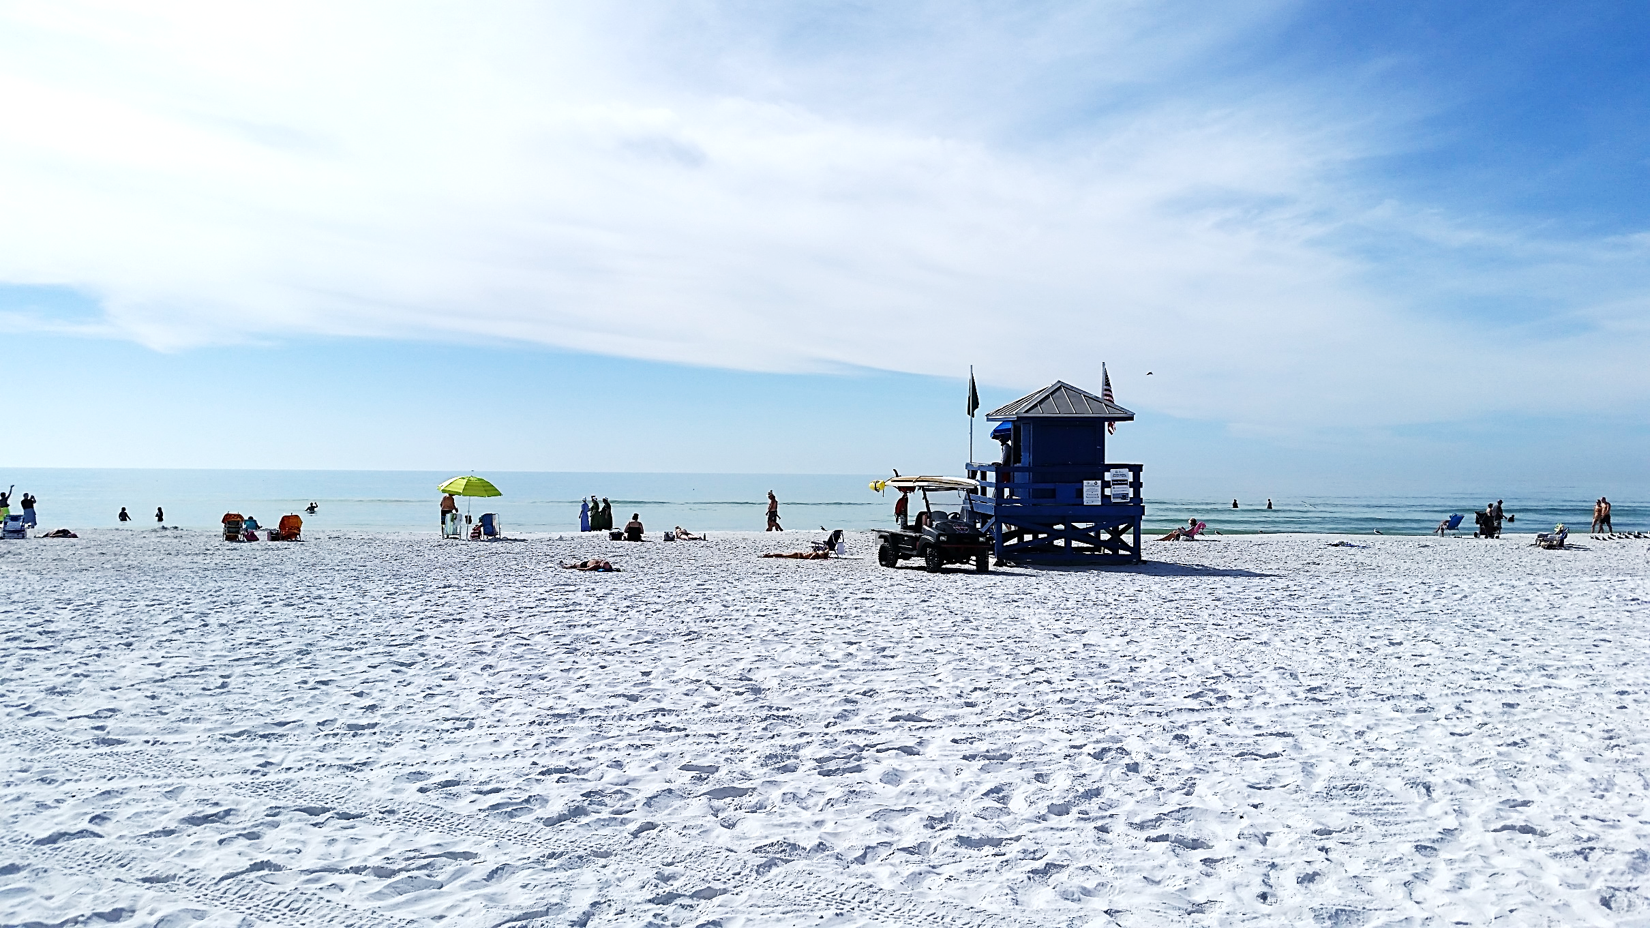 There S Nothing Like Relaxing In The Best Sand In The World On Siesta Key Beach Siesta Key Beach Most Beautiful Beaches Siesta Key Village